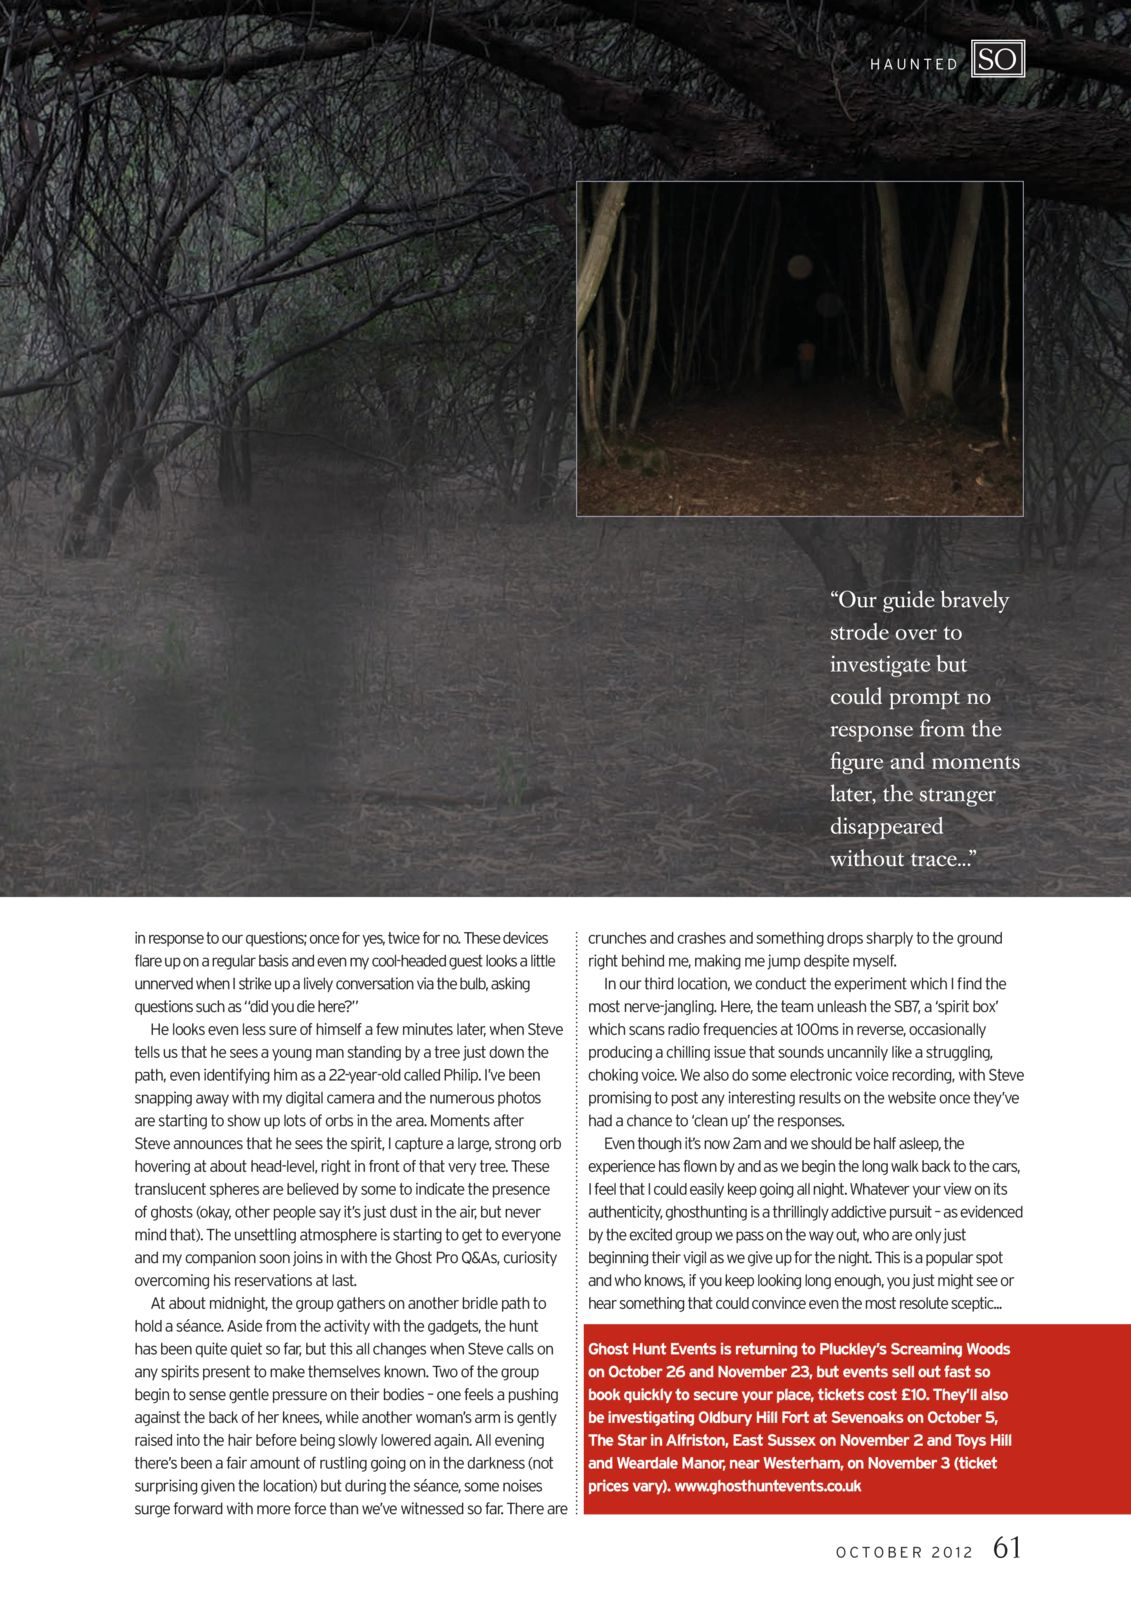 So Magazine - Pluckley Woods - Click to enlarge